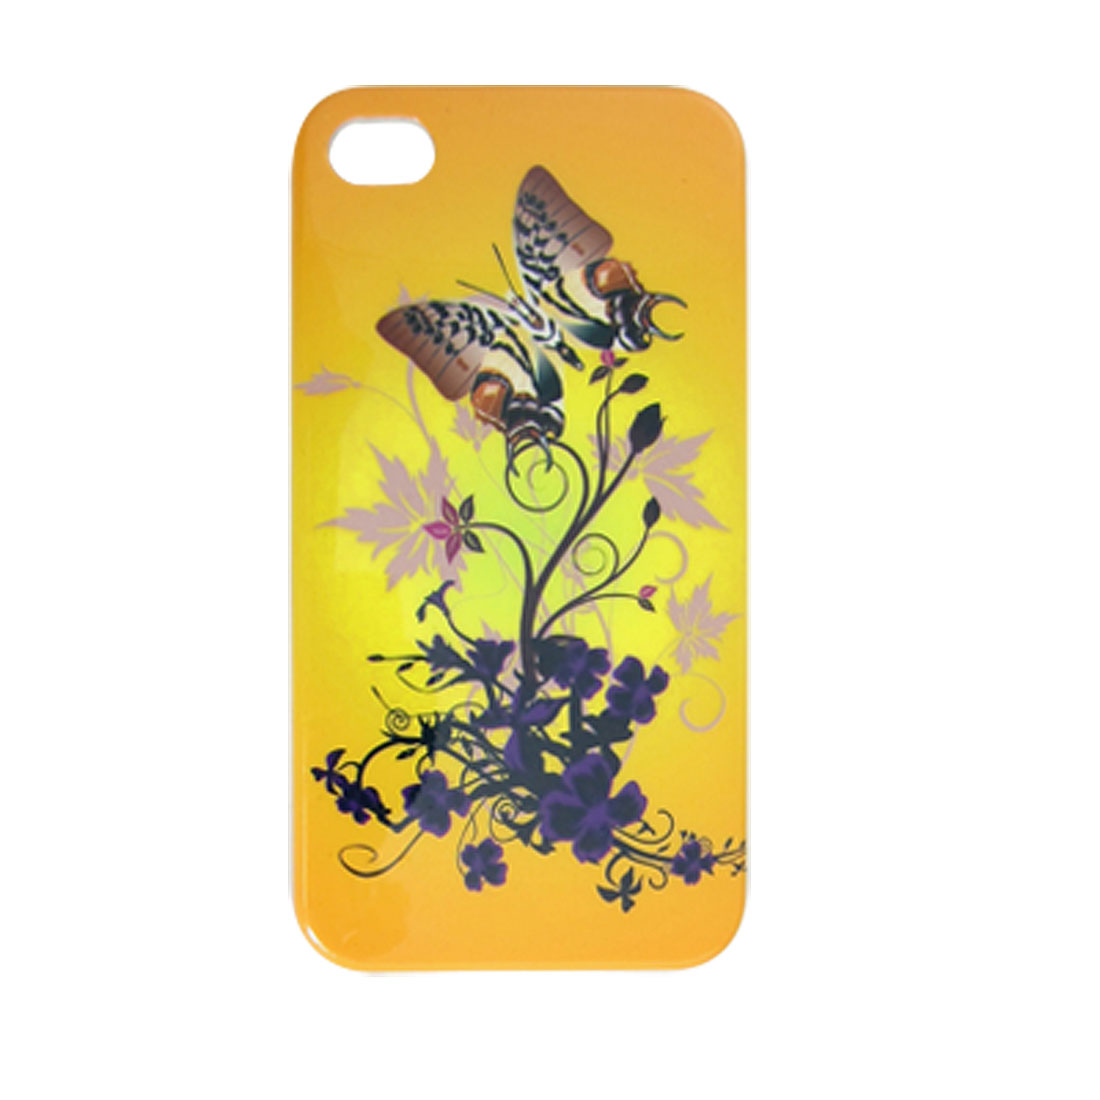 Hard Plastic IMD Flower Butterfly Print Cover for iPhone 4 4G